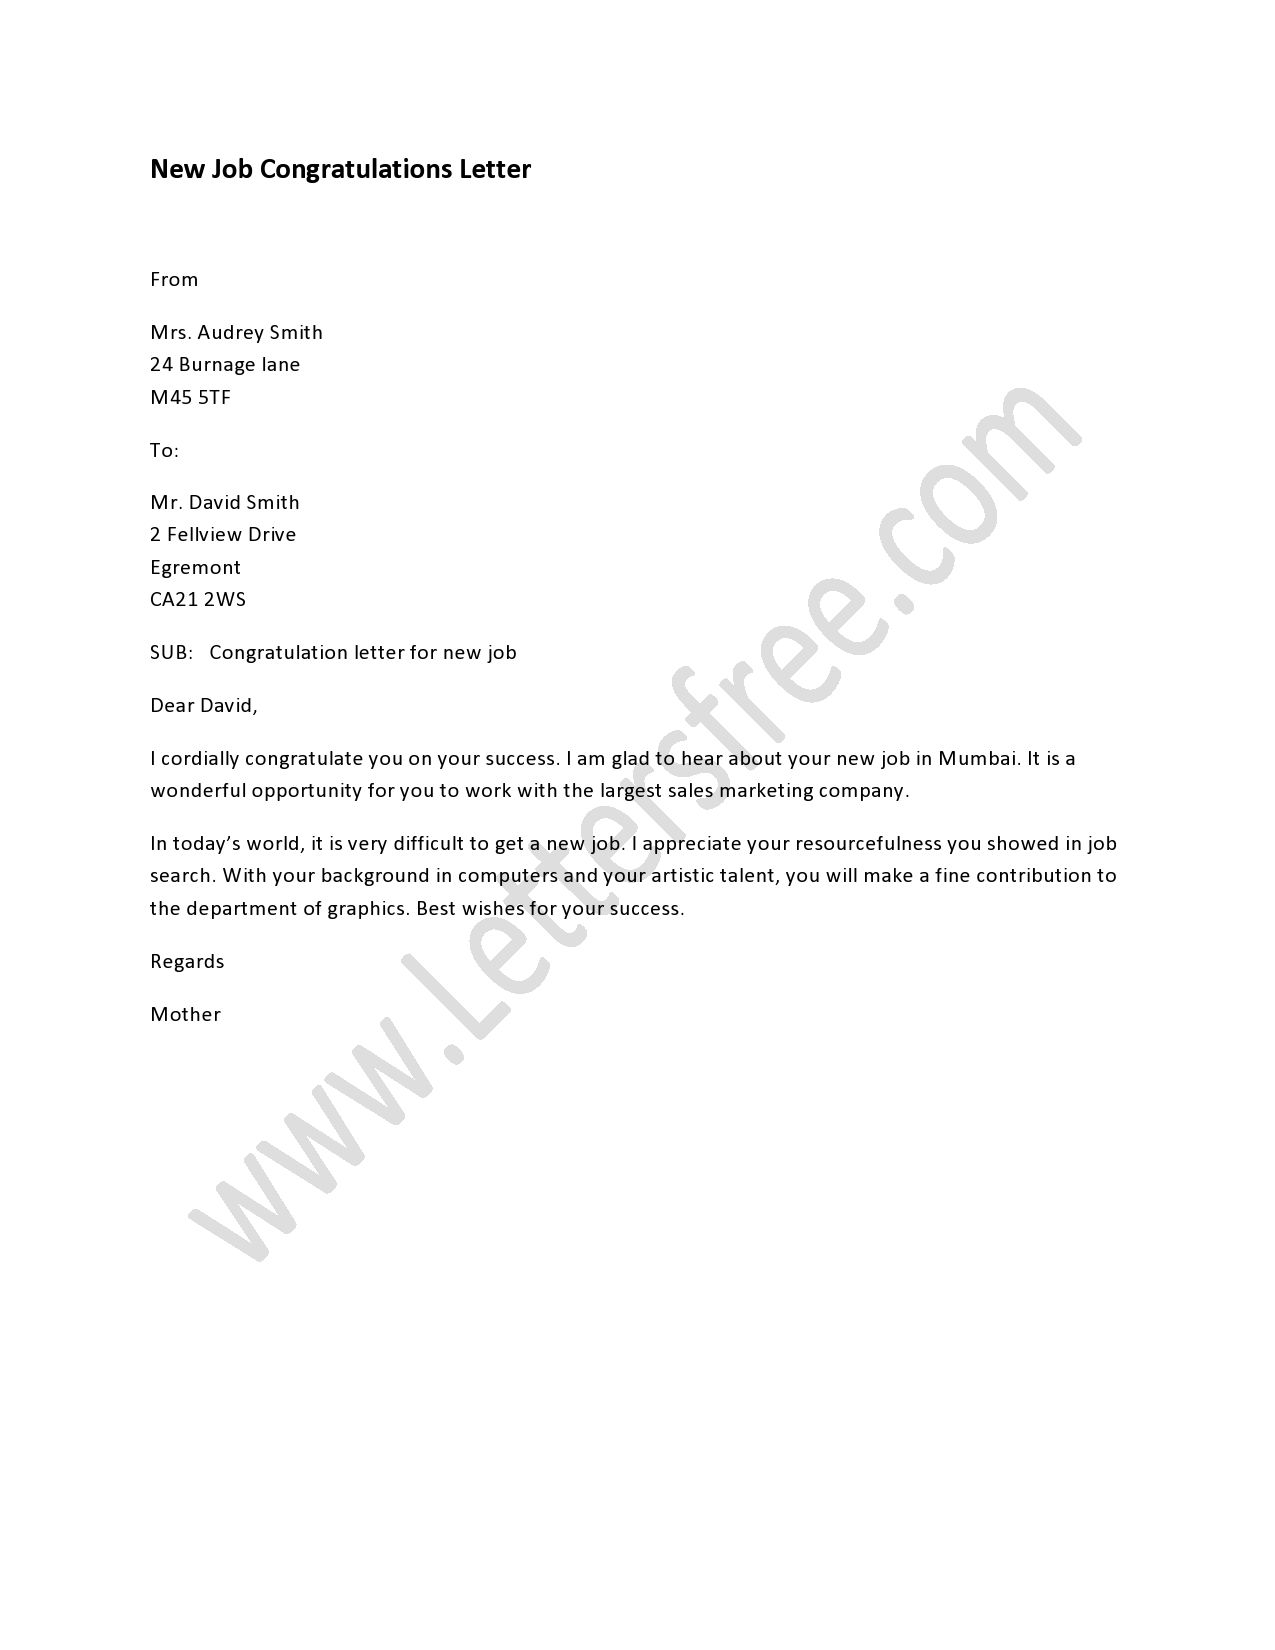 New Job Congratulations Letter Sample Congratulations Letters